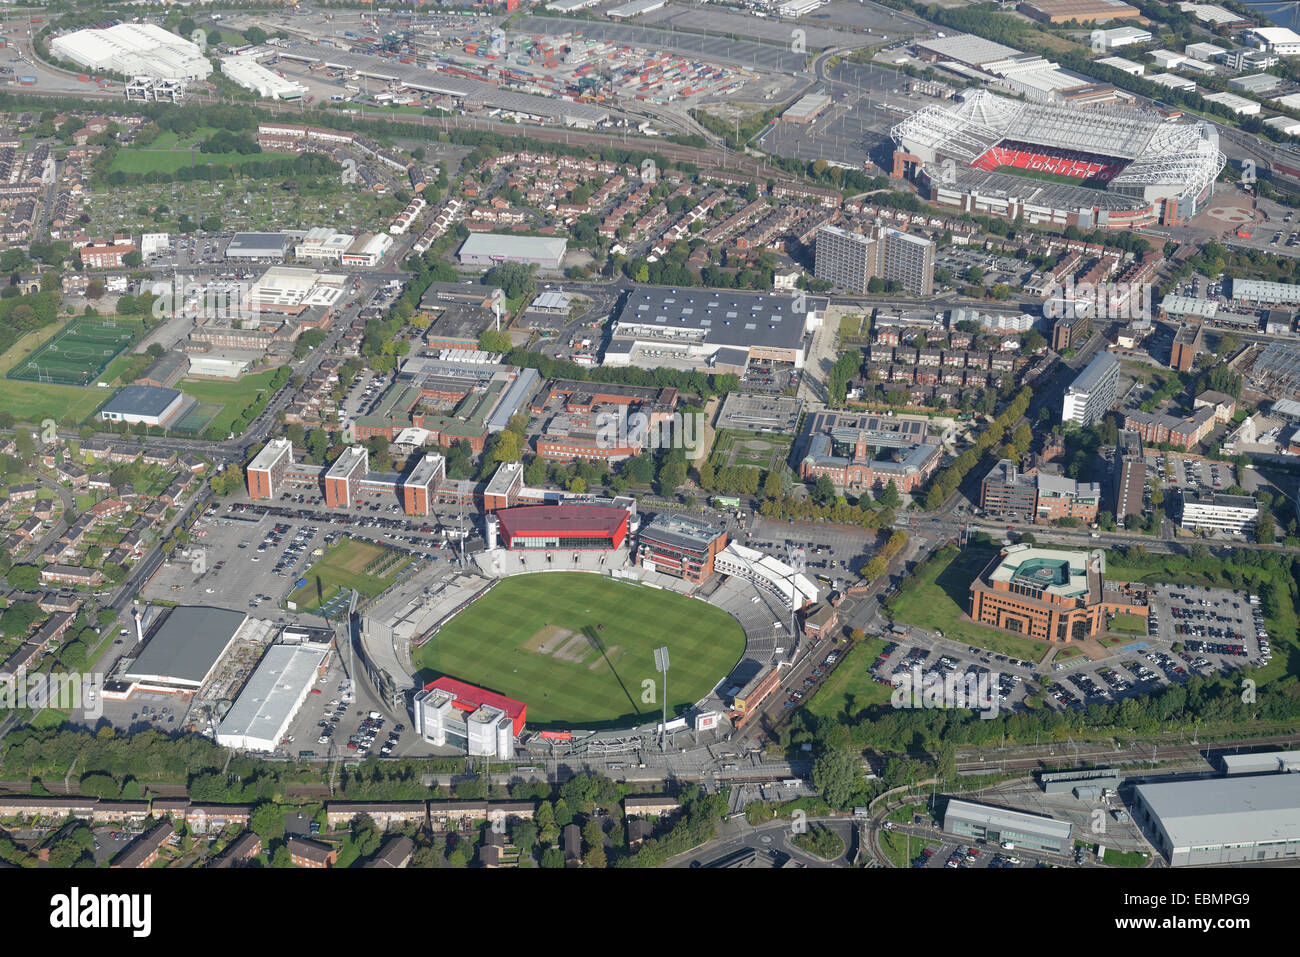 an-aerial-view-of-the-old-trafford-and-t